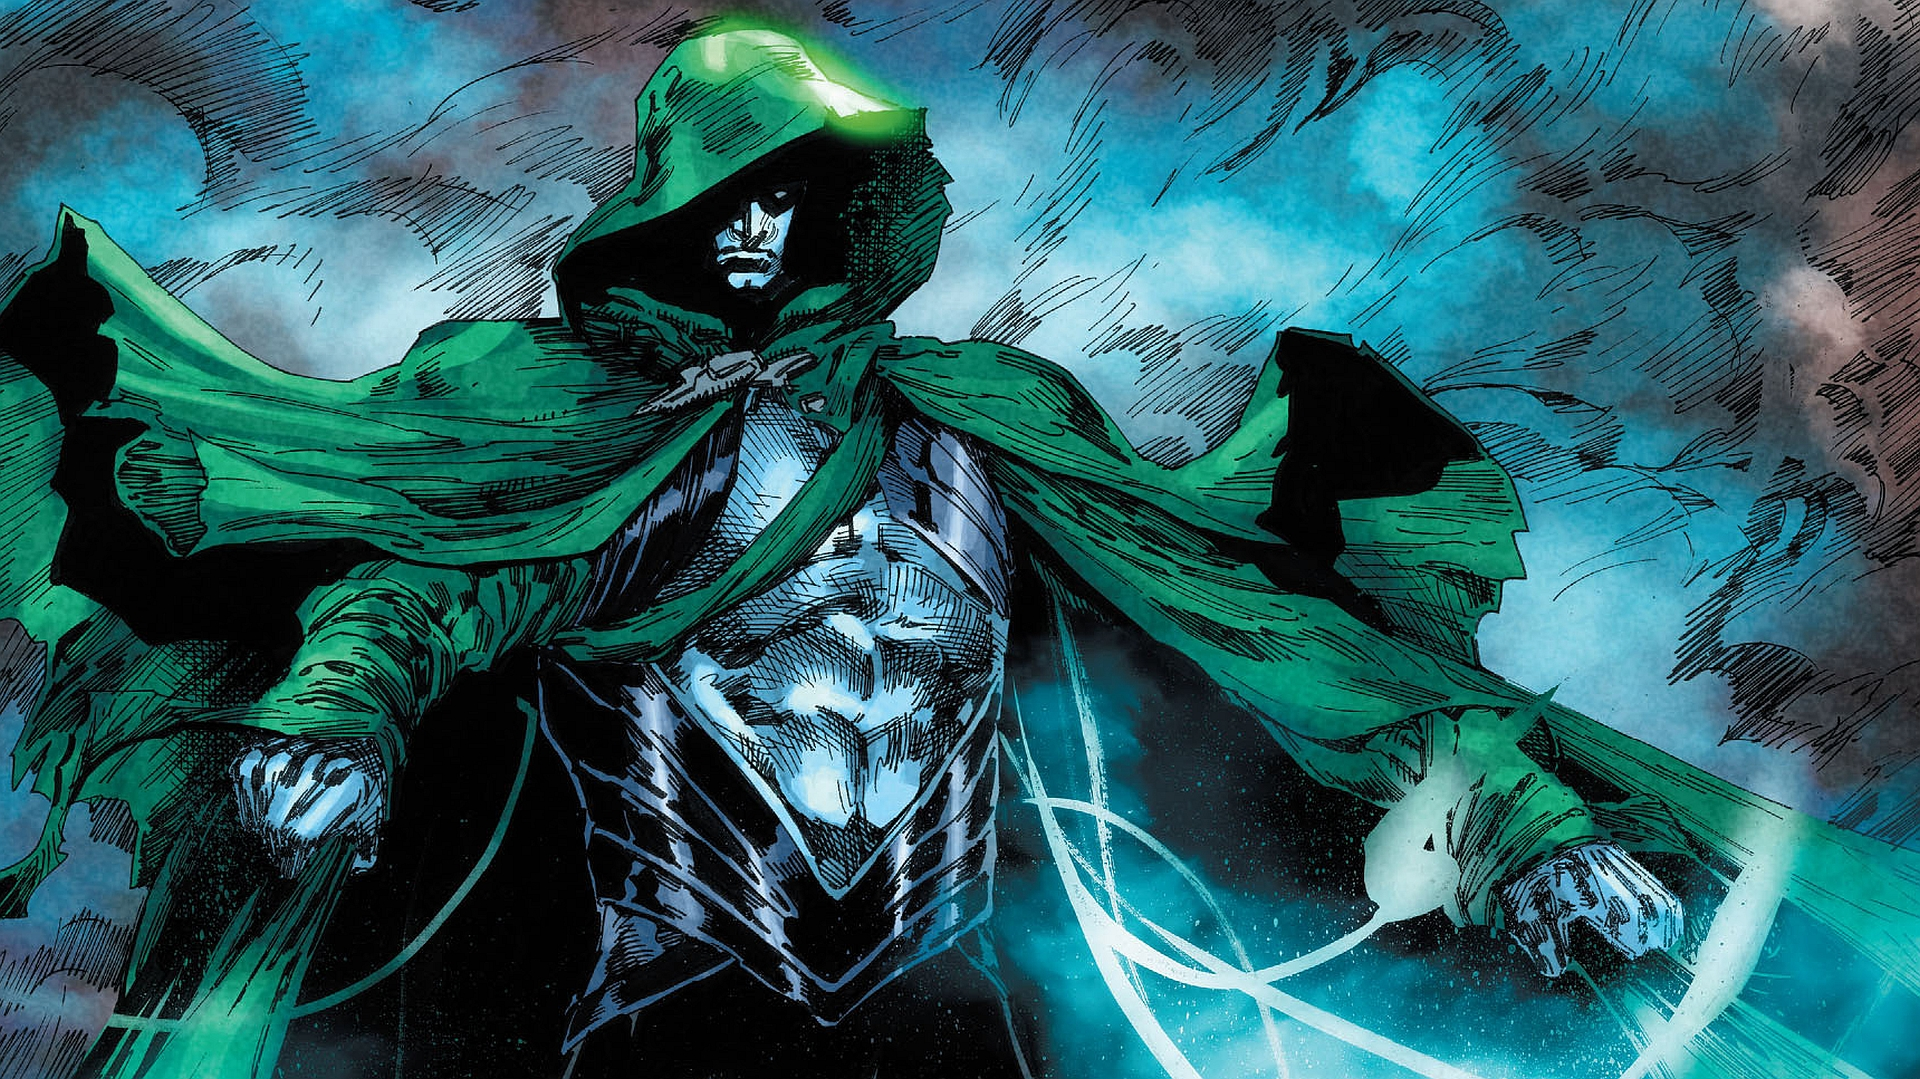 Top 20 Overpowered most powerful dc comics characters Spectre 2